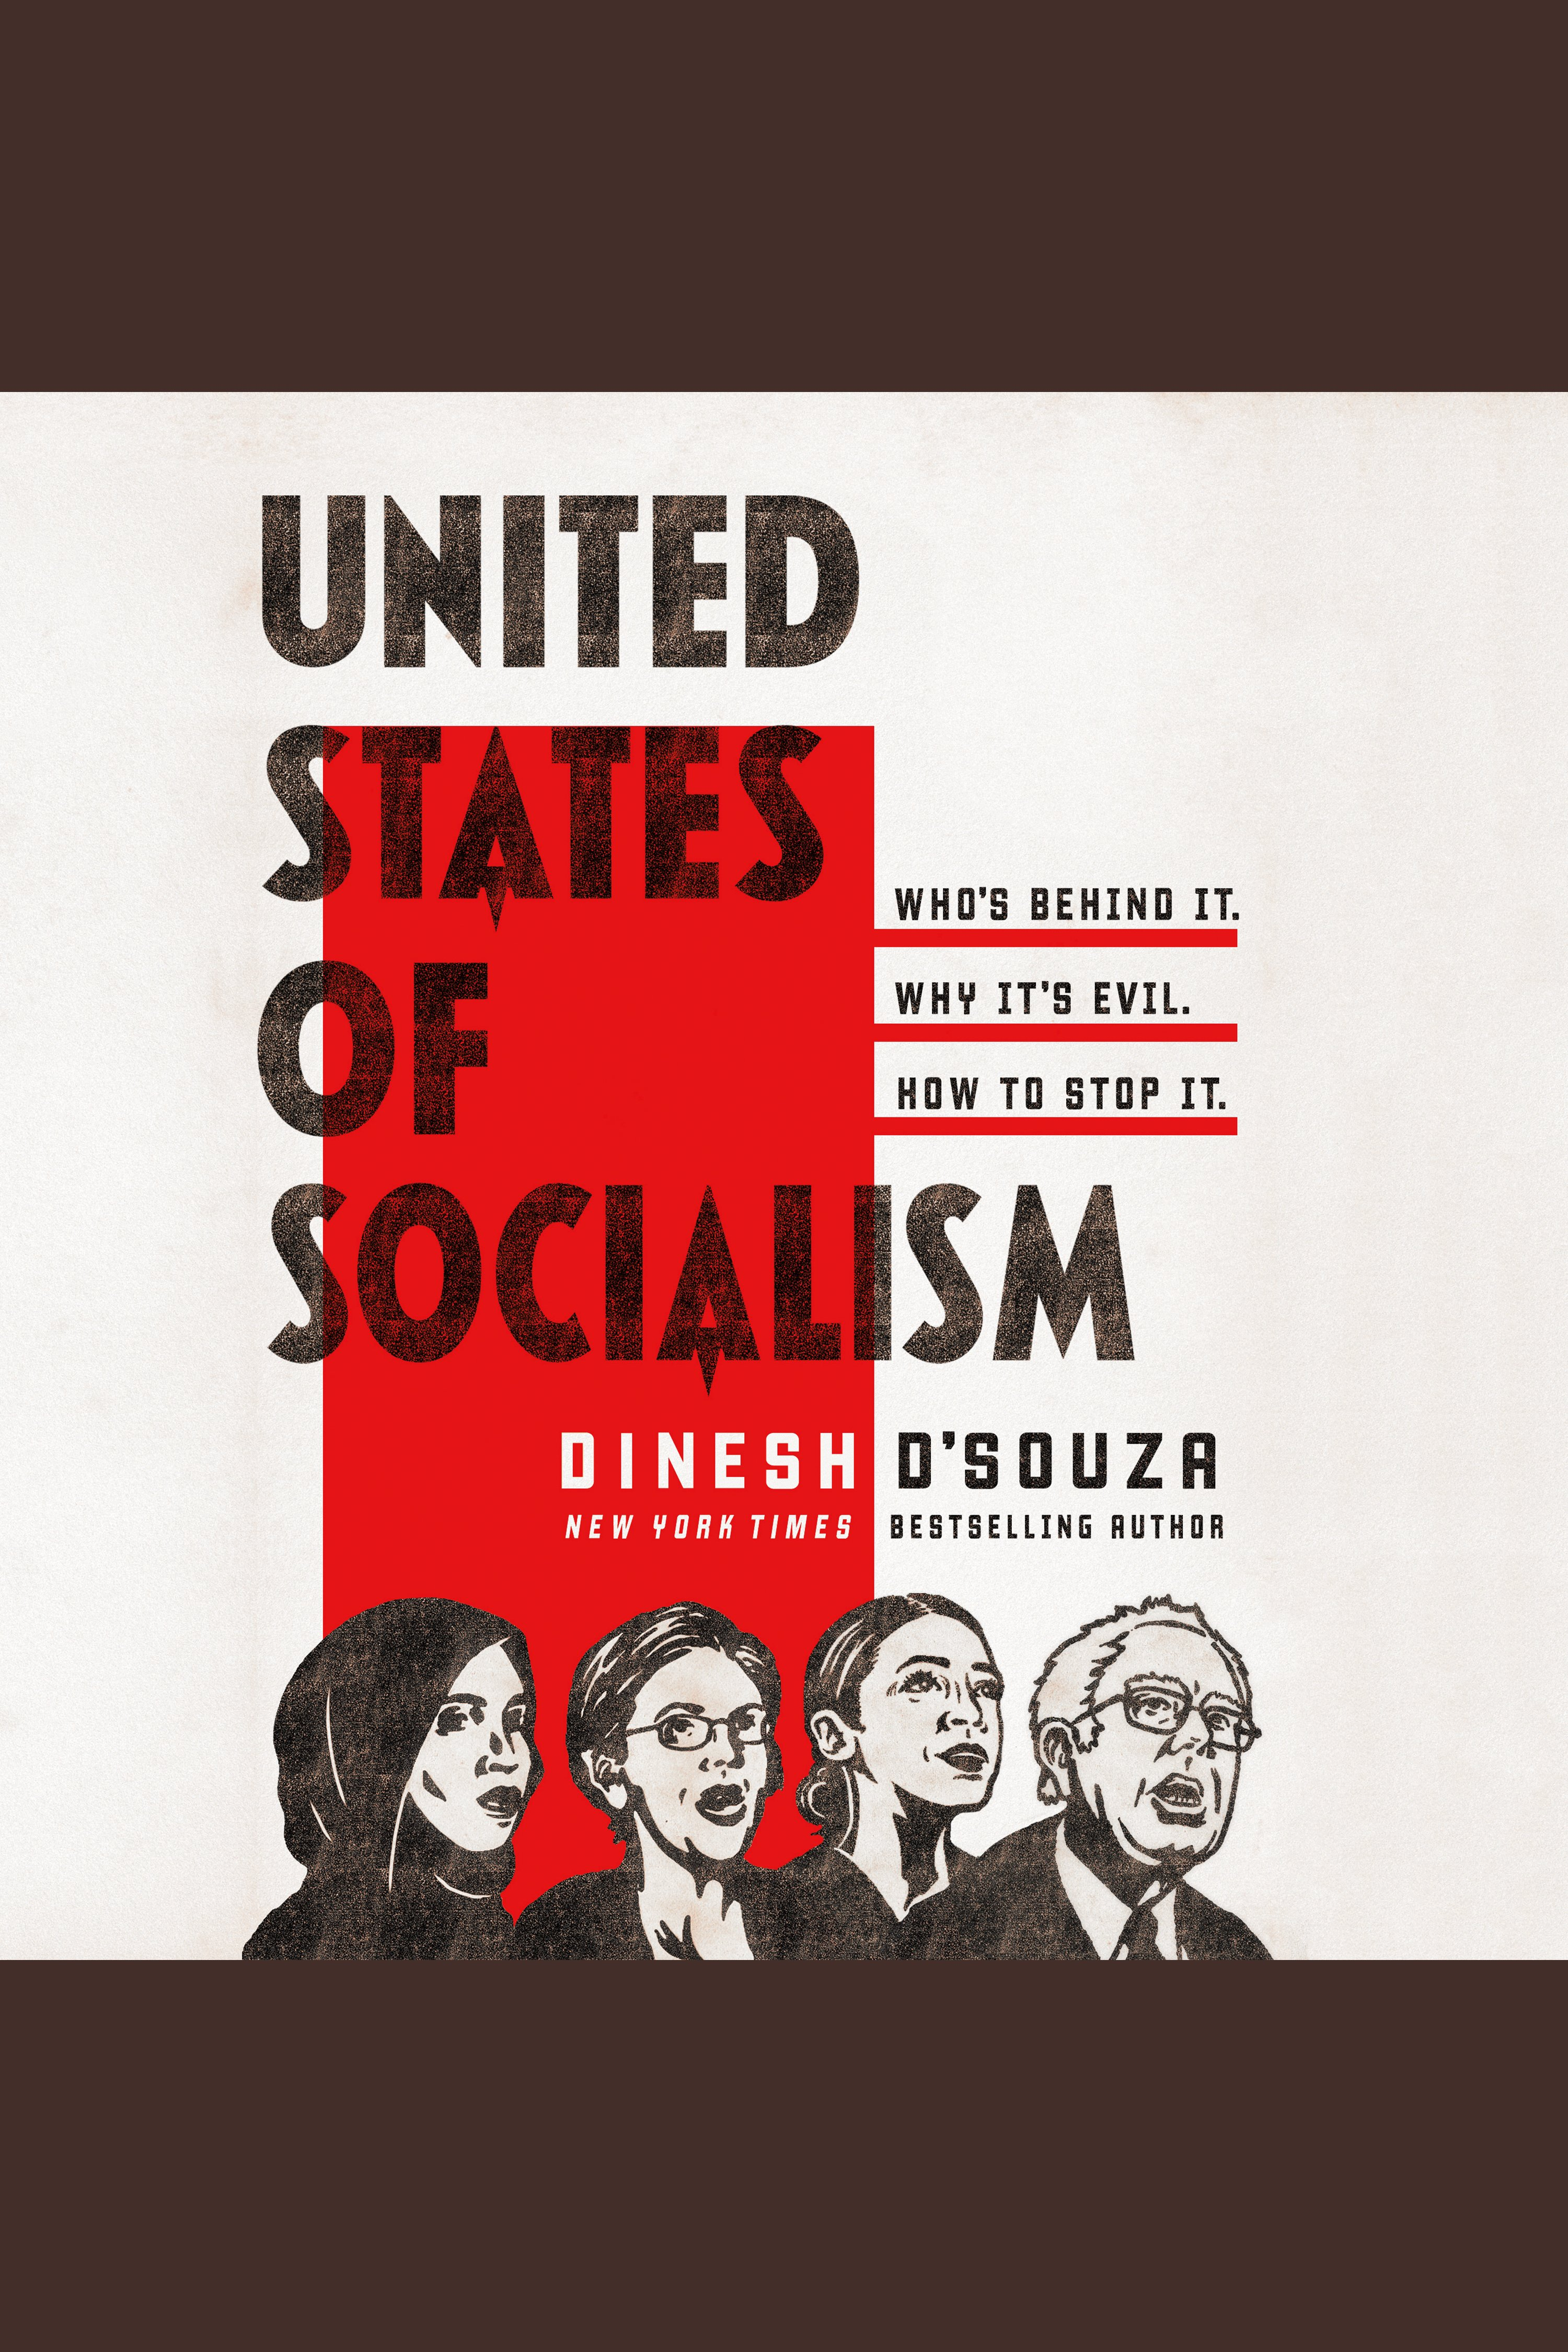 United States of Socialism Who's Behind It. Why It's Evil. How to Stop It.